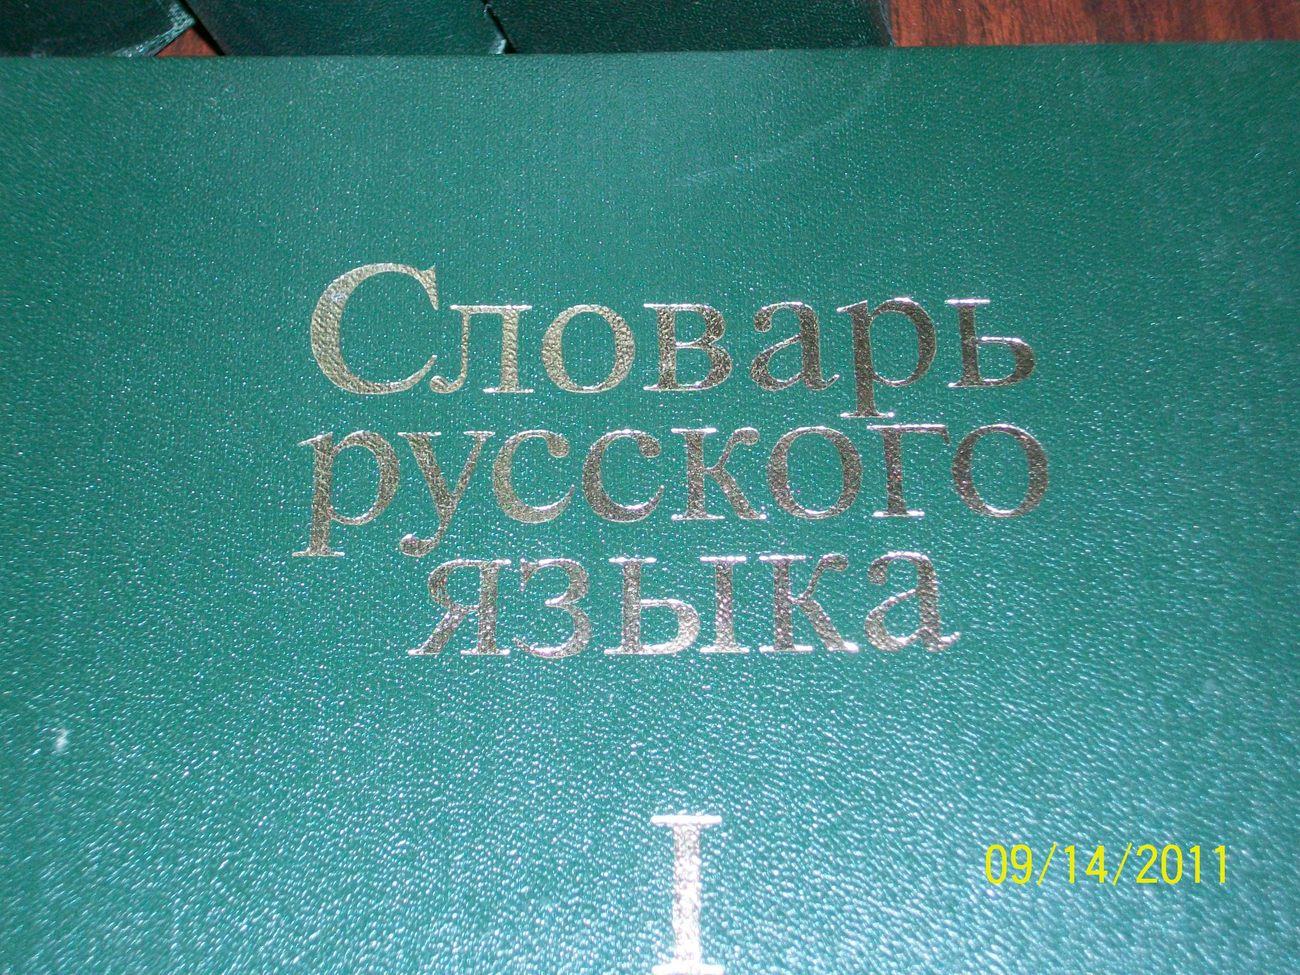 russian language dictionary 4 volumes science academy USSR 1